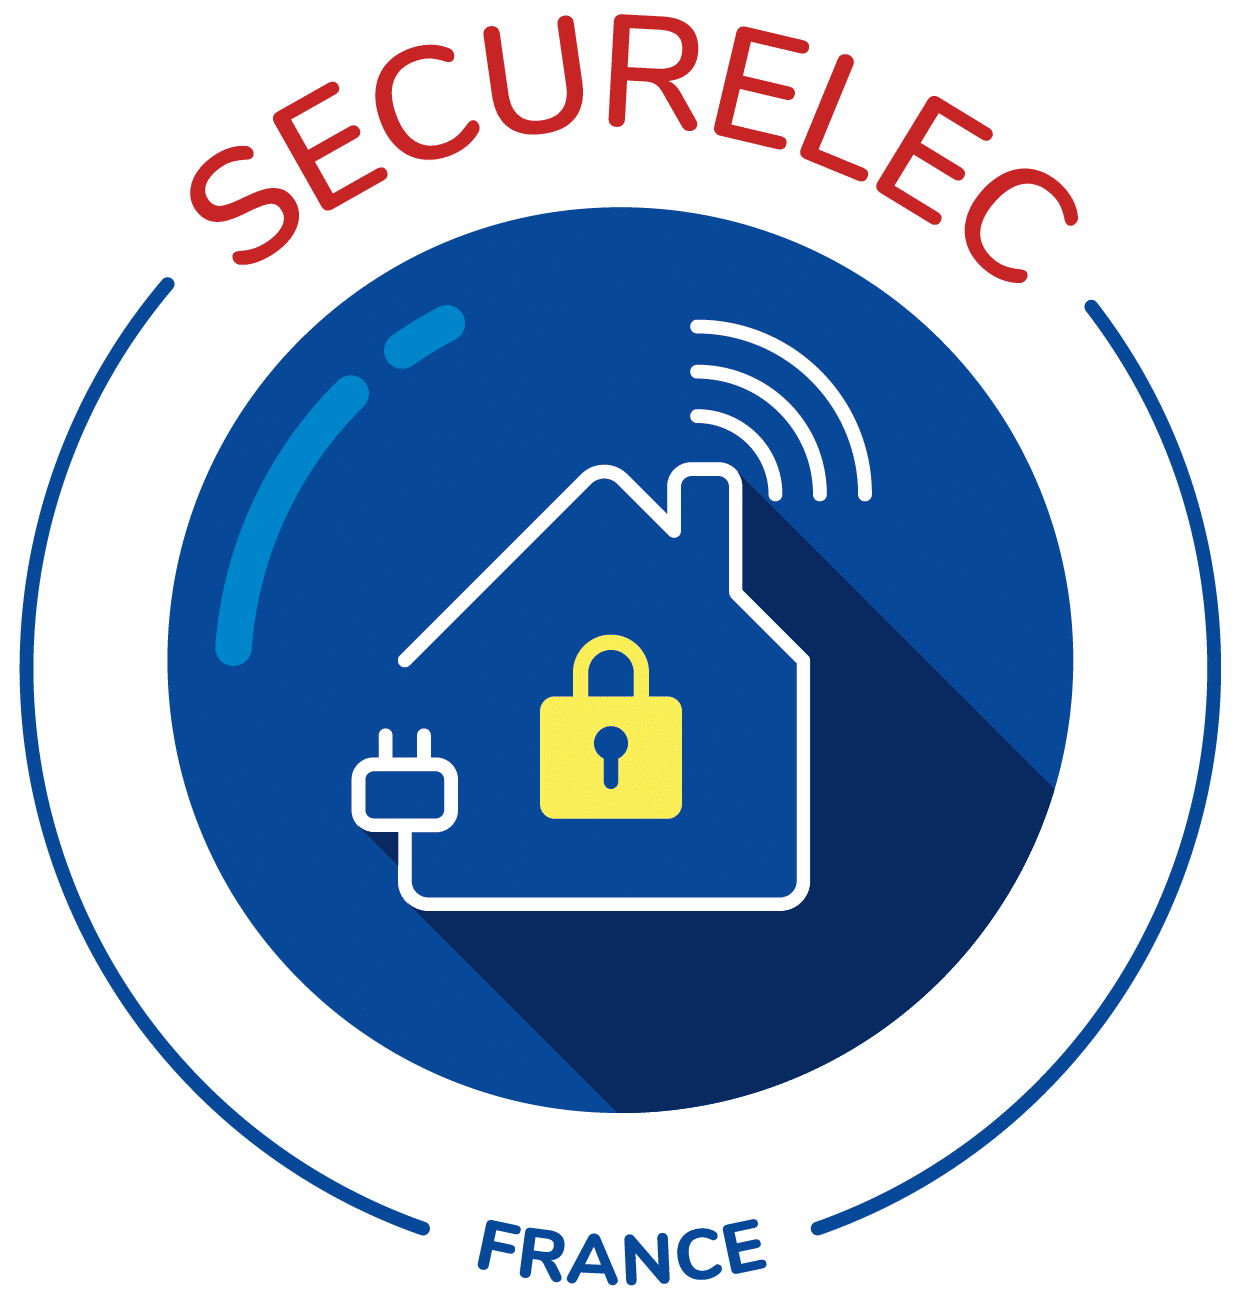 Logo Securelec France